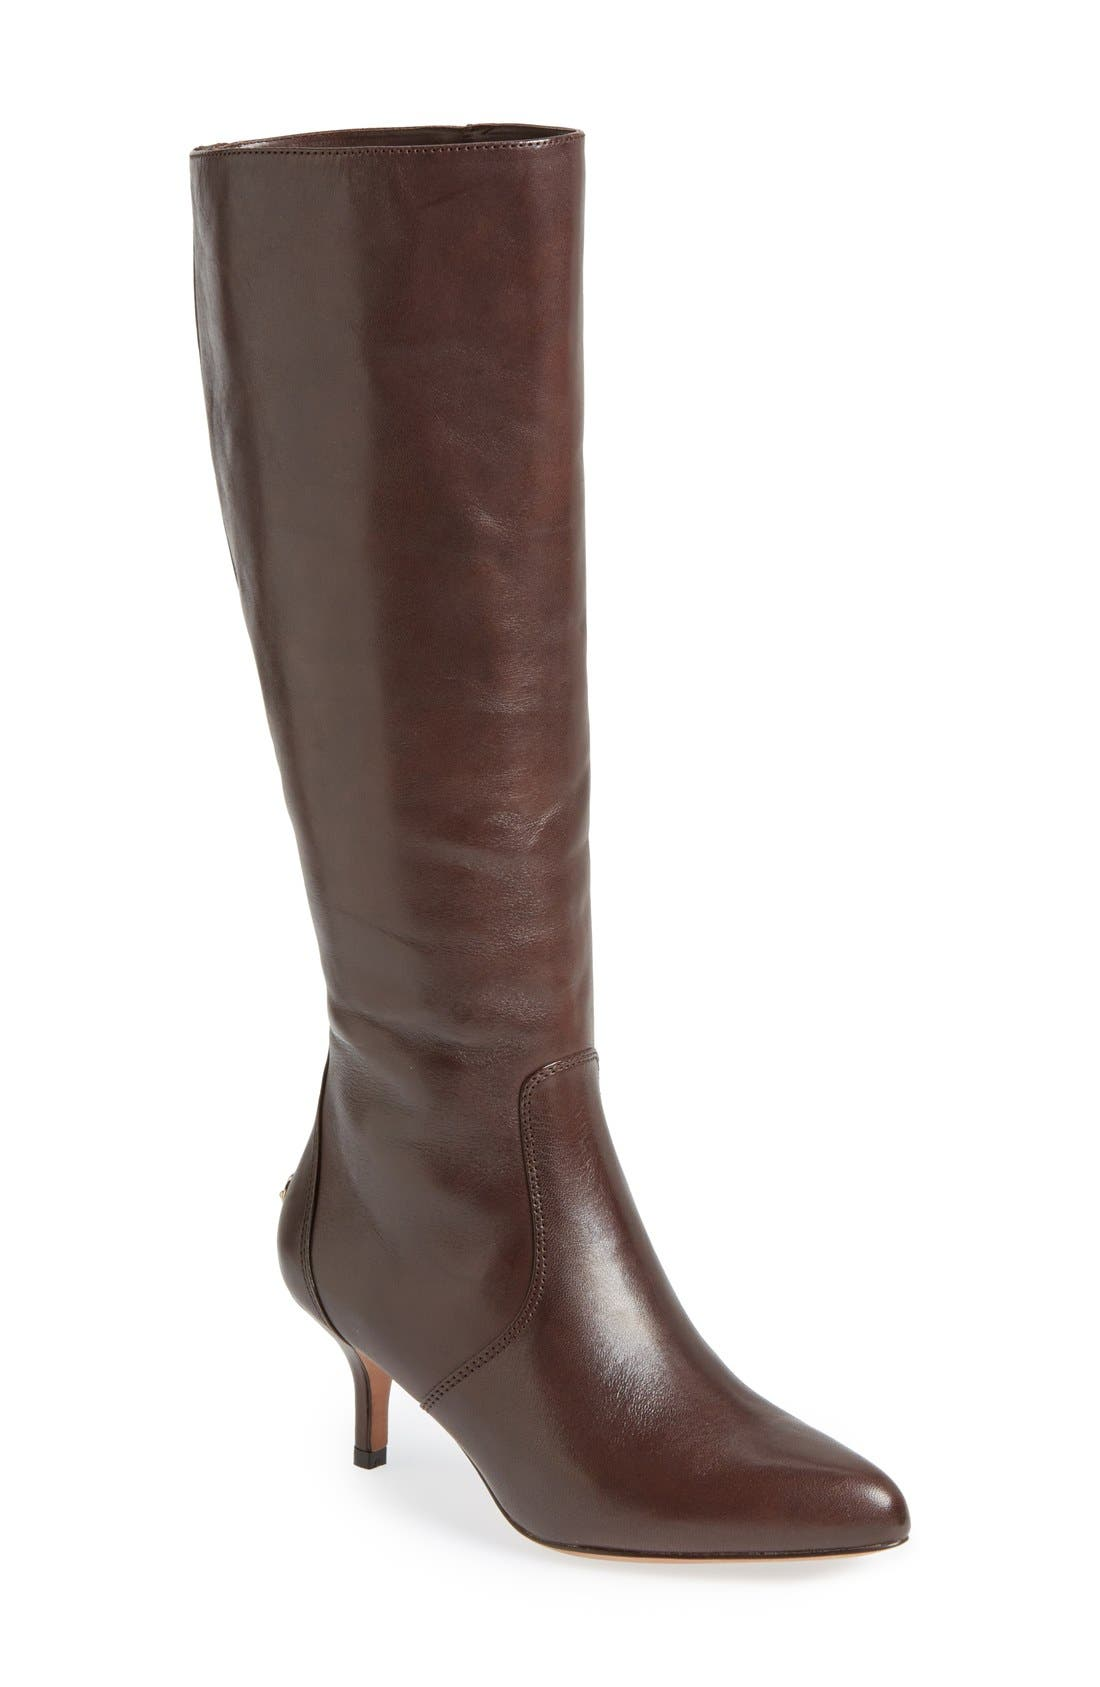 Alternate Image 1 Selected - COACH 'Foxy' Knee High Boot (Women)